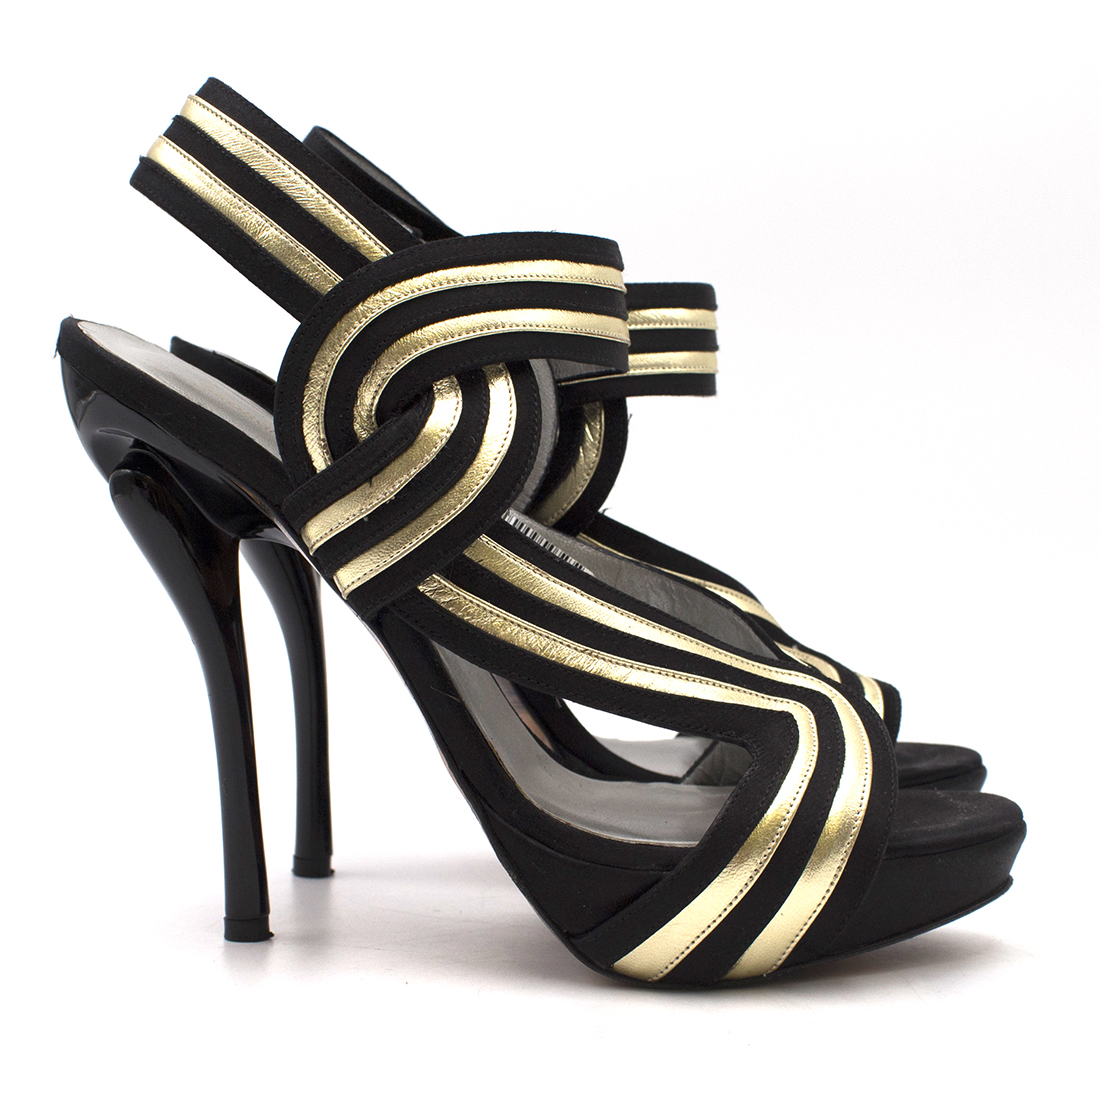 Georgina Goodman Black and Gold Striped Sandals